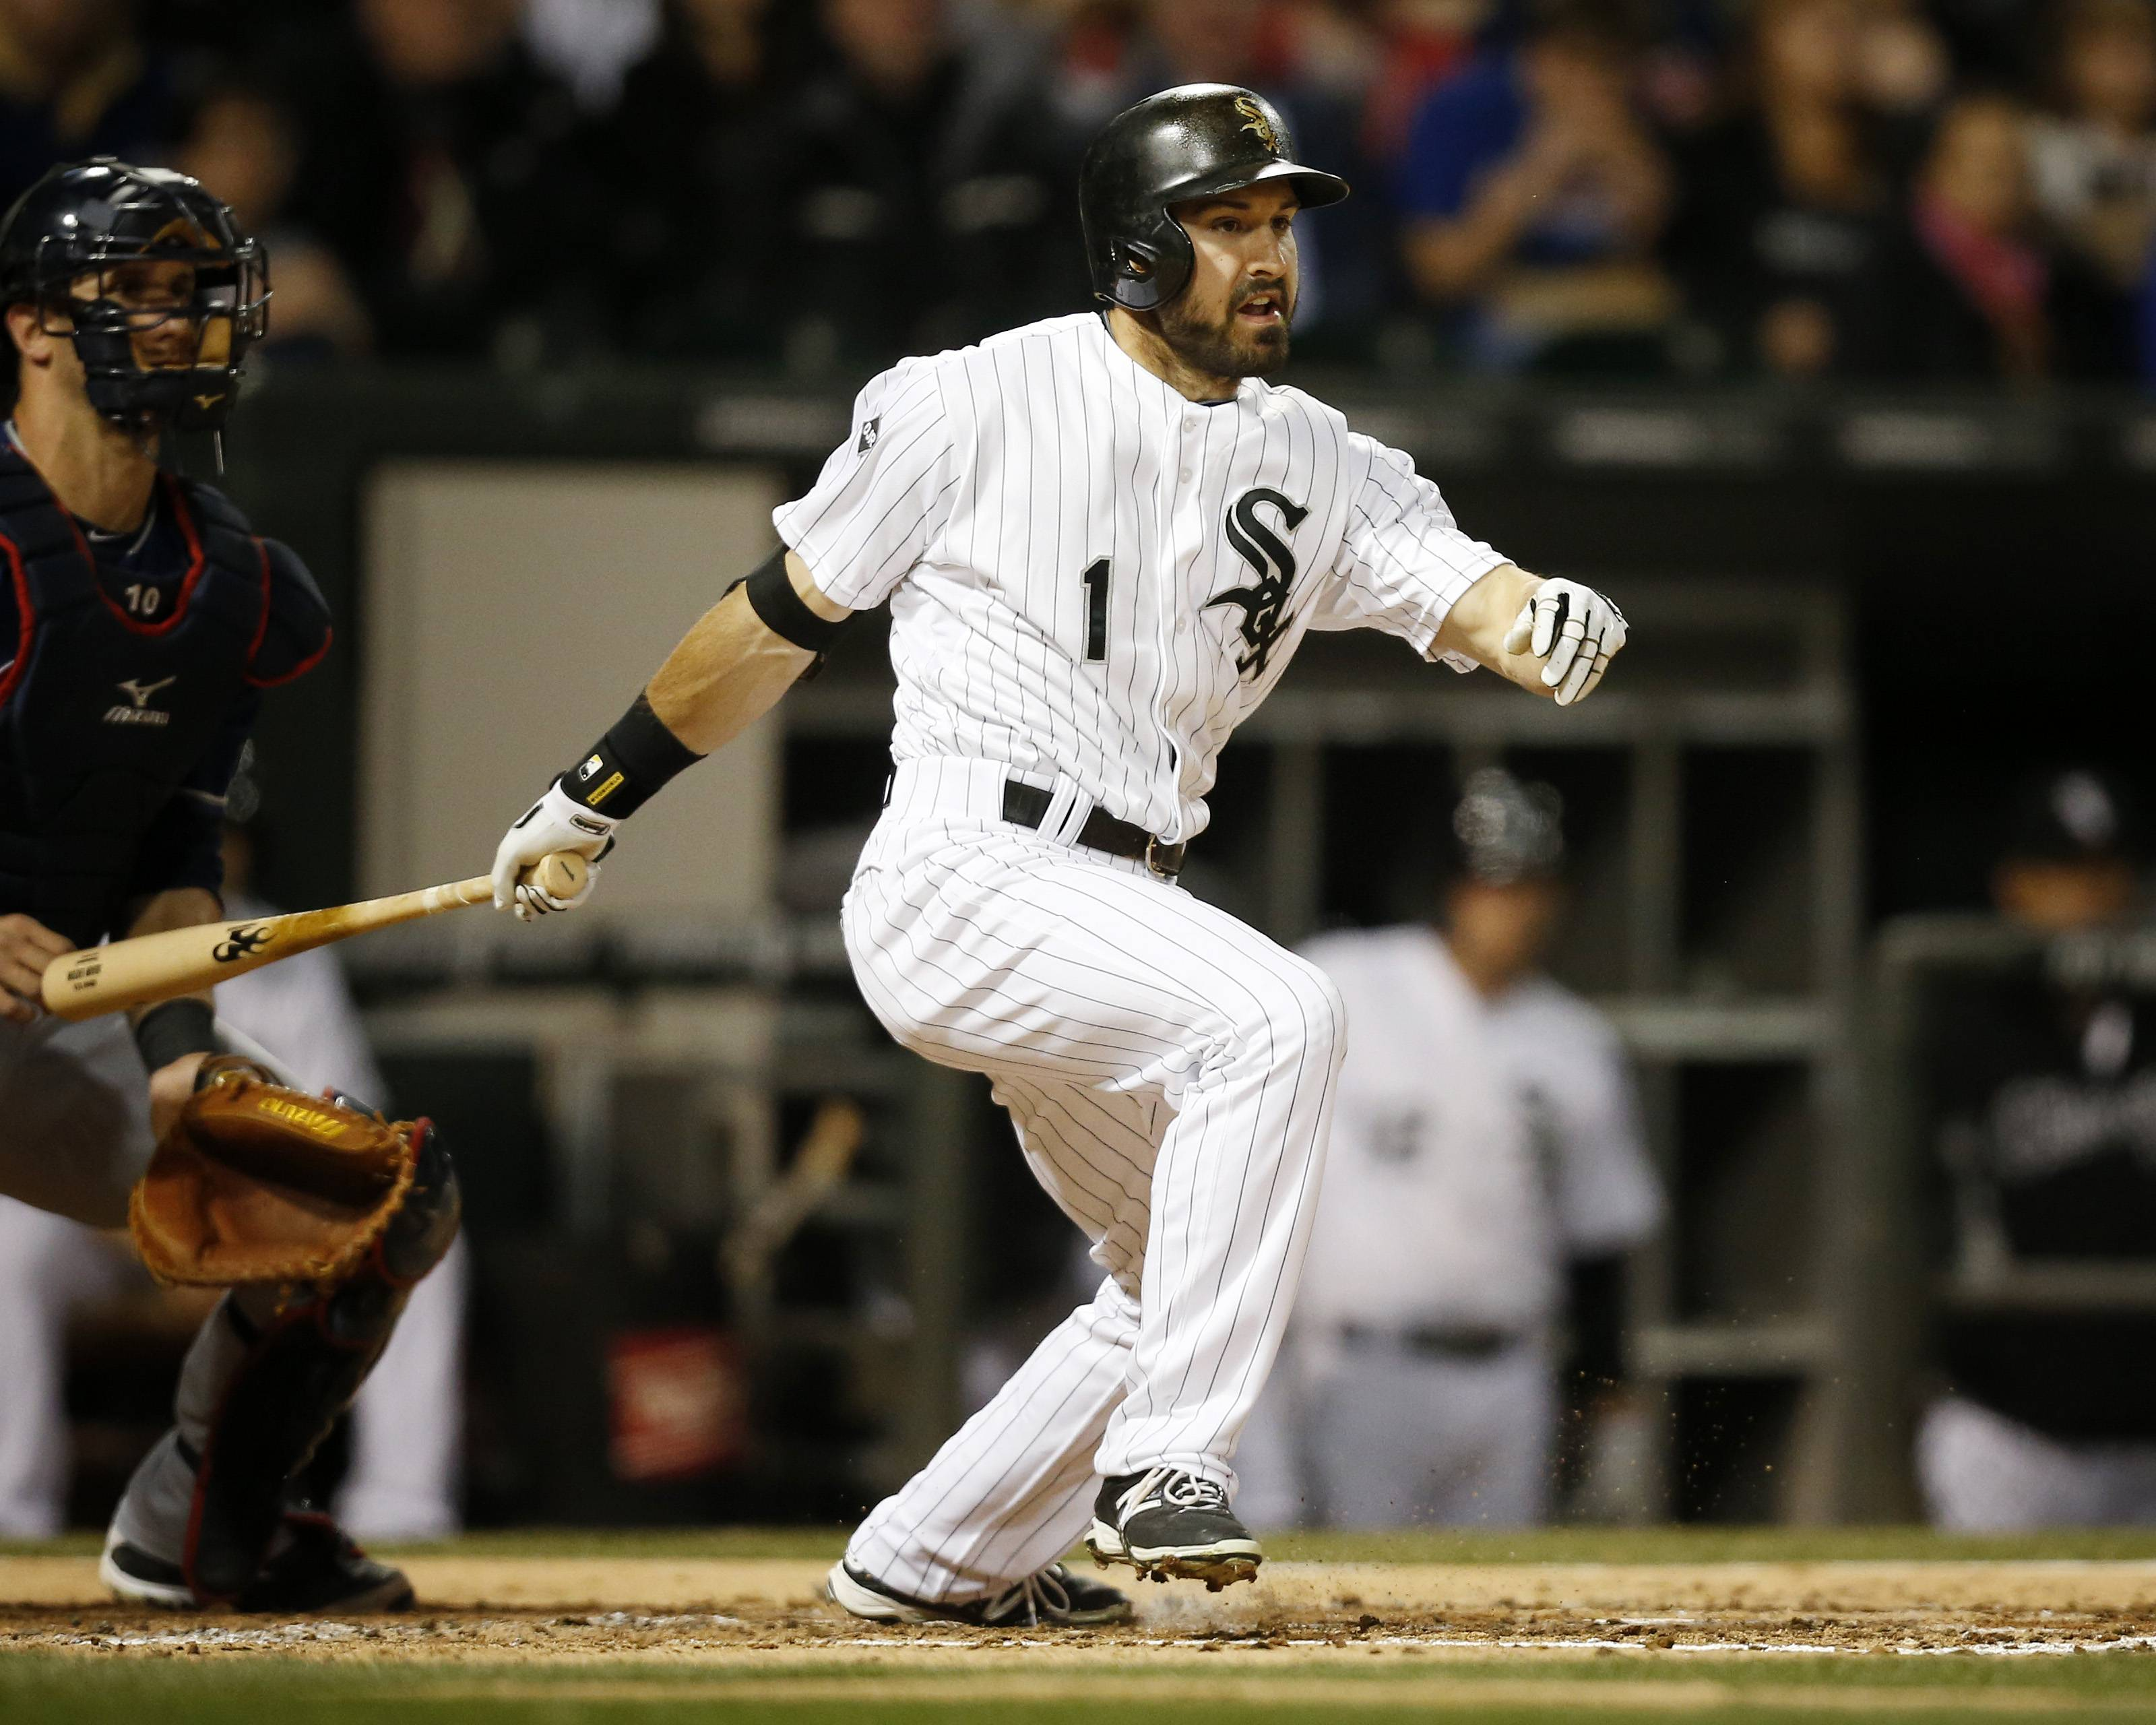 Adam Eaton hits an RBI double against Cleveland during the third inning Friday night at U.S. Cellular Field.